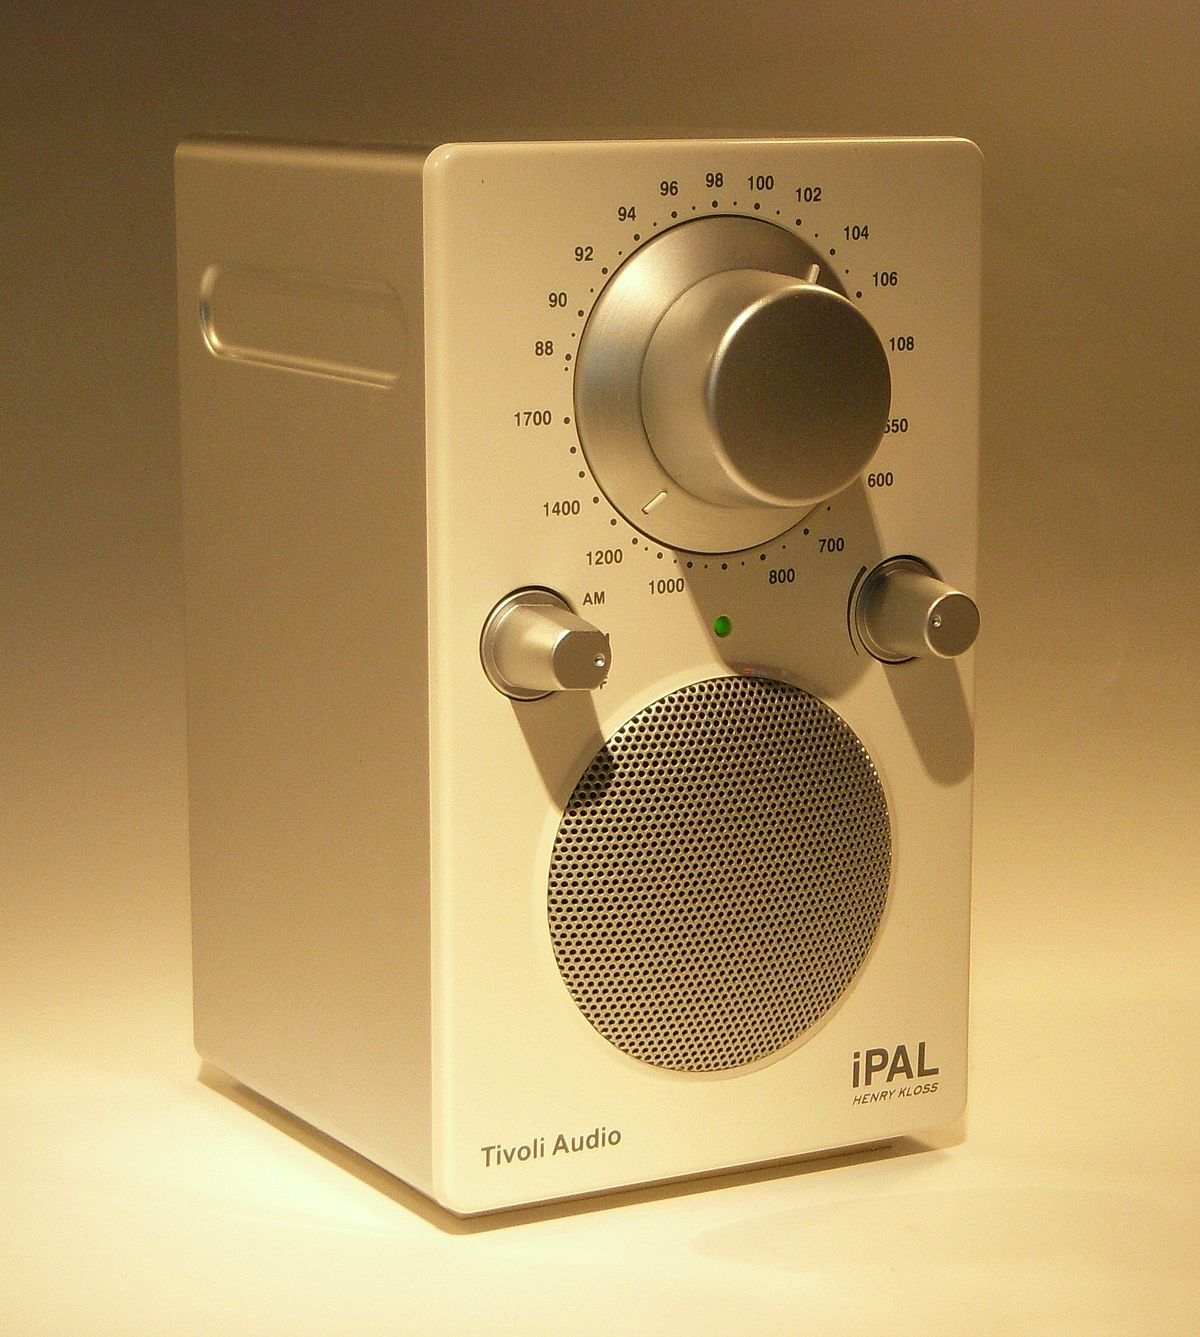 Tivoli Audio on tivoli audio model cd player